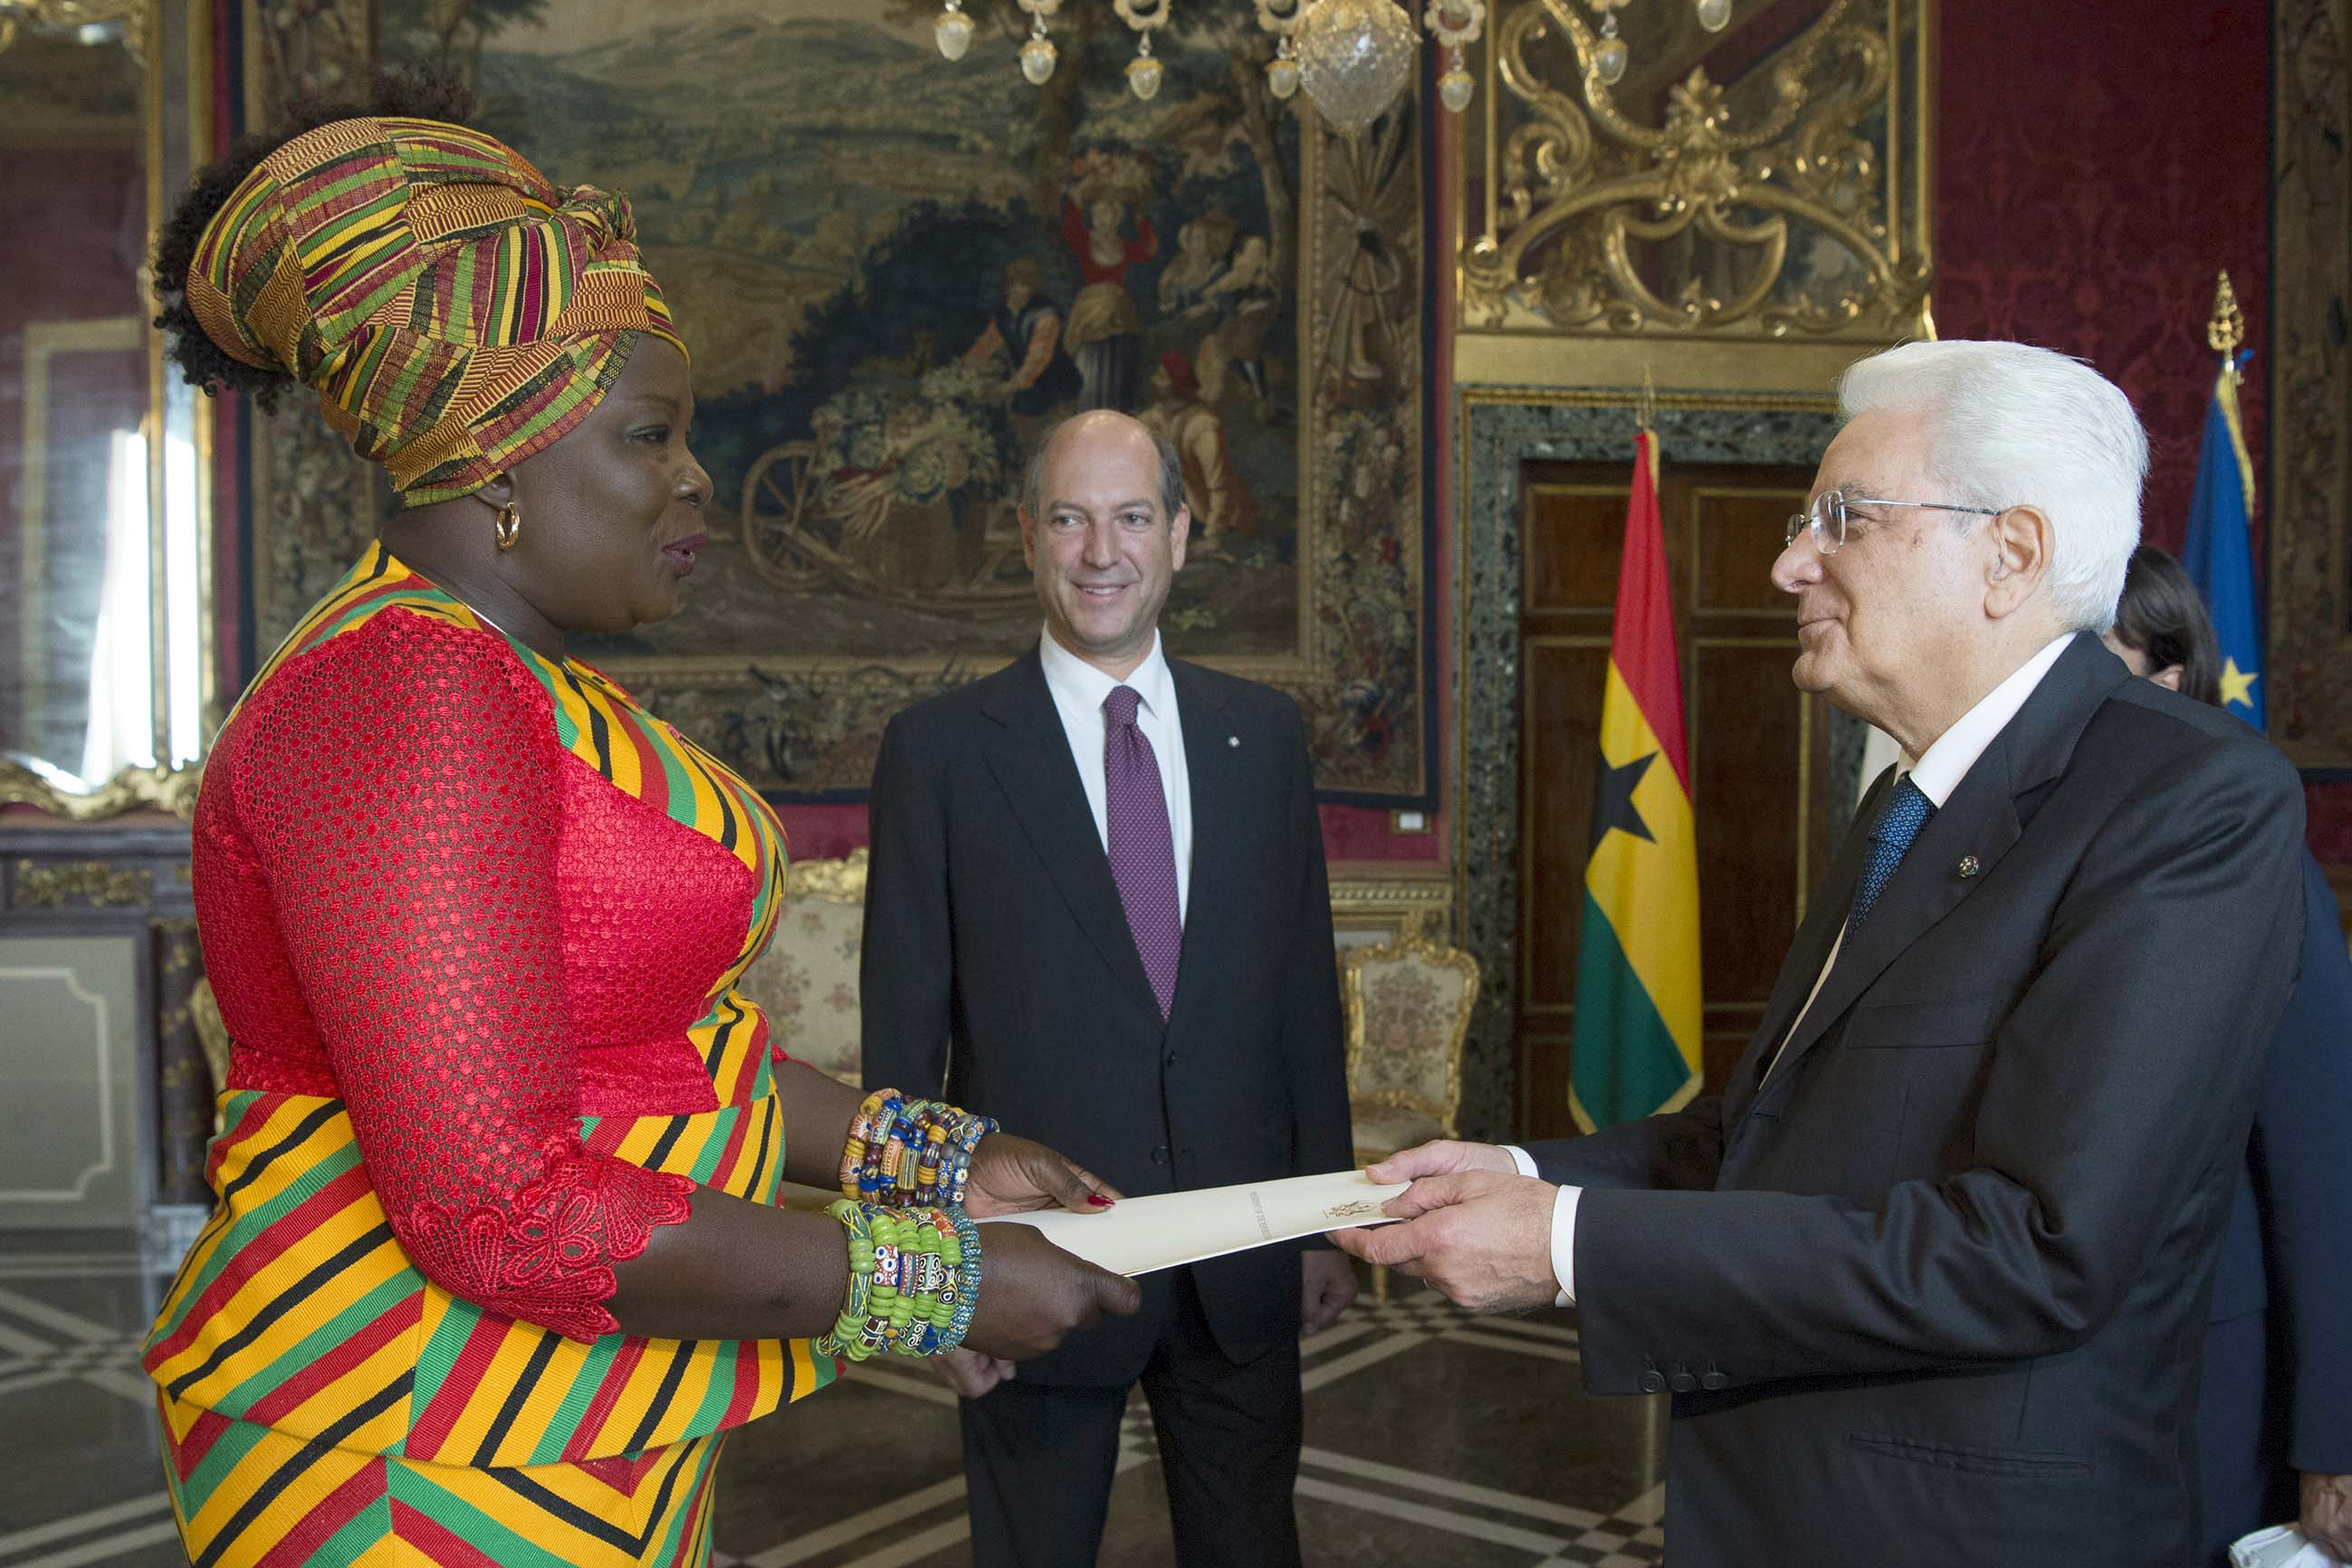 HER EXCELLENCY MS. PAULINA PATIENCE ABAYAGE PRESENTS HER LETTERS OF CREDENCE TO HIS EXCELLENCY MR. SERGIO MATTARELLA, PRESIDENT OF THE REPUBLIC OF ITALY